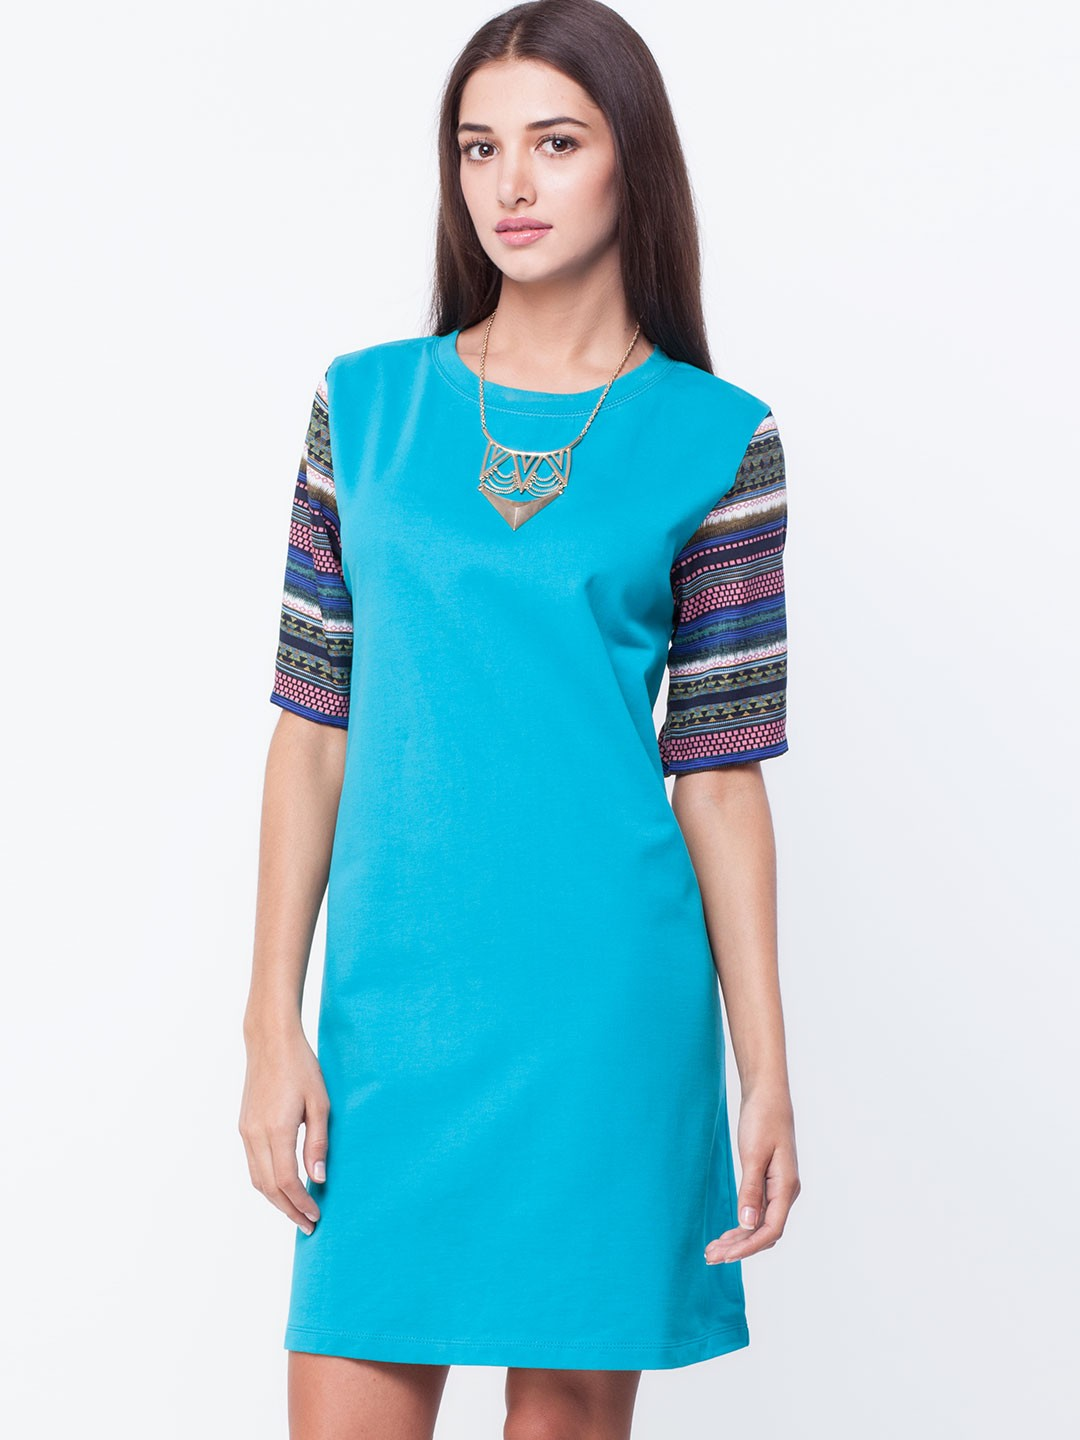 Shop tunic tops for women. Look smart and feel comfortable with unique range of cotton, silk embroidered tunics for women at metools.ml Worldwide Free shipping*.